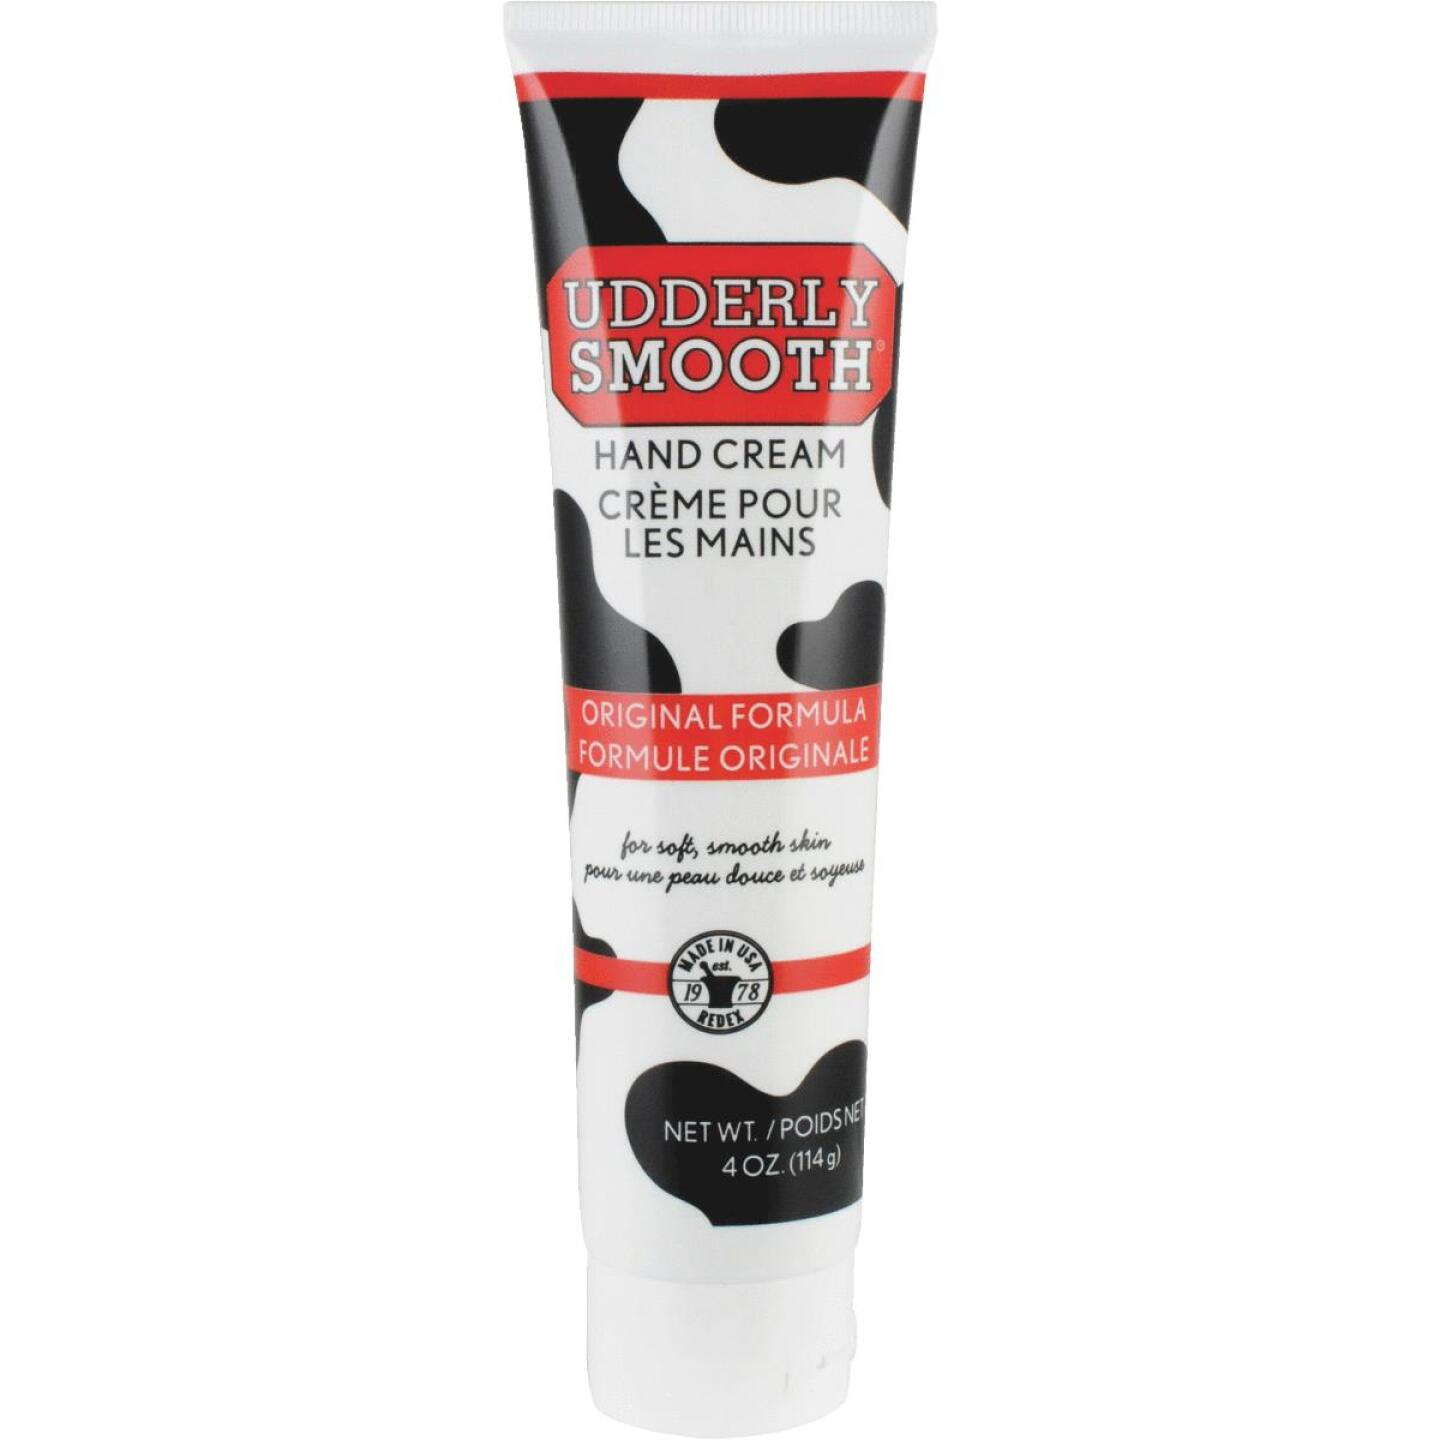 Udderly Smooth 4 Oz. Tube Udder Cream Lotion Image 1